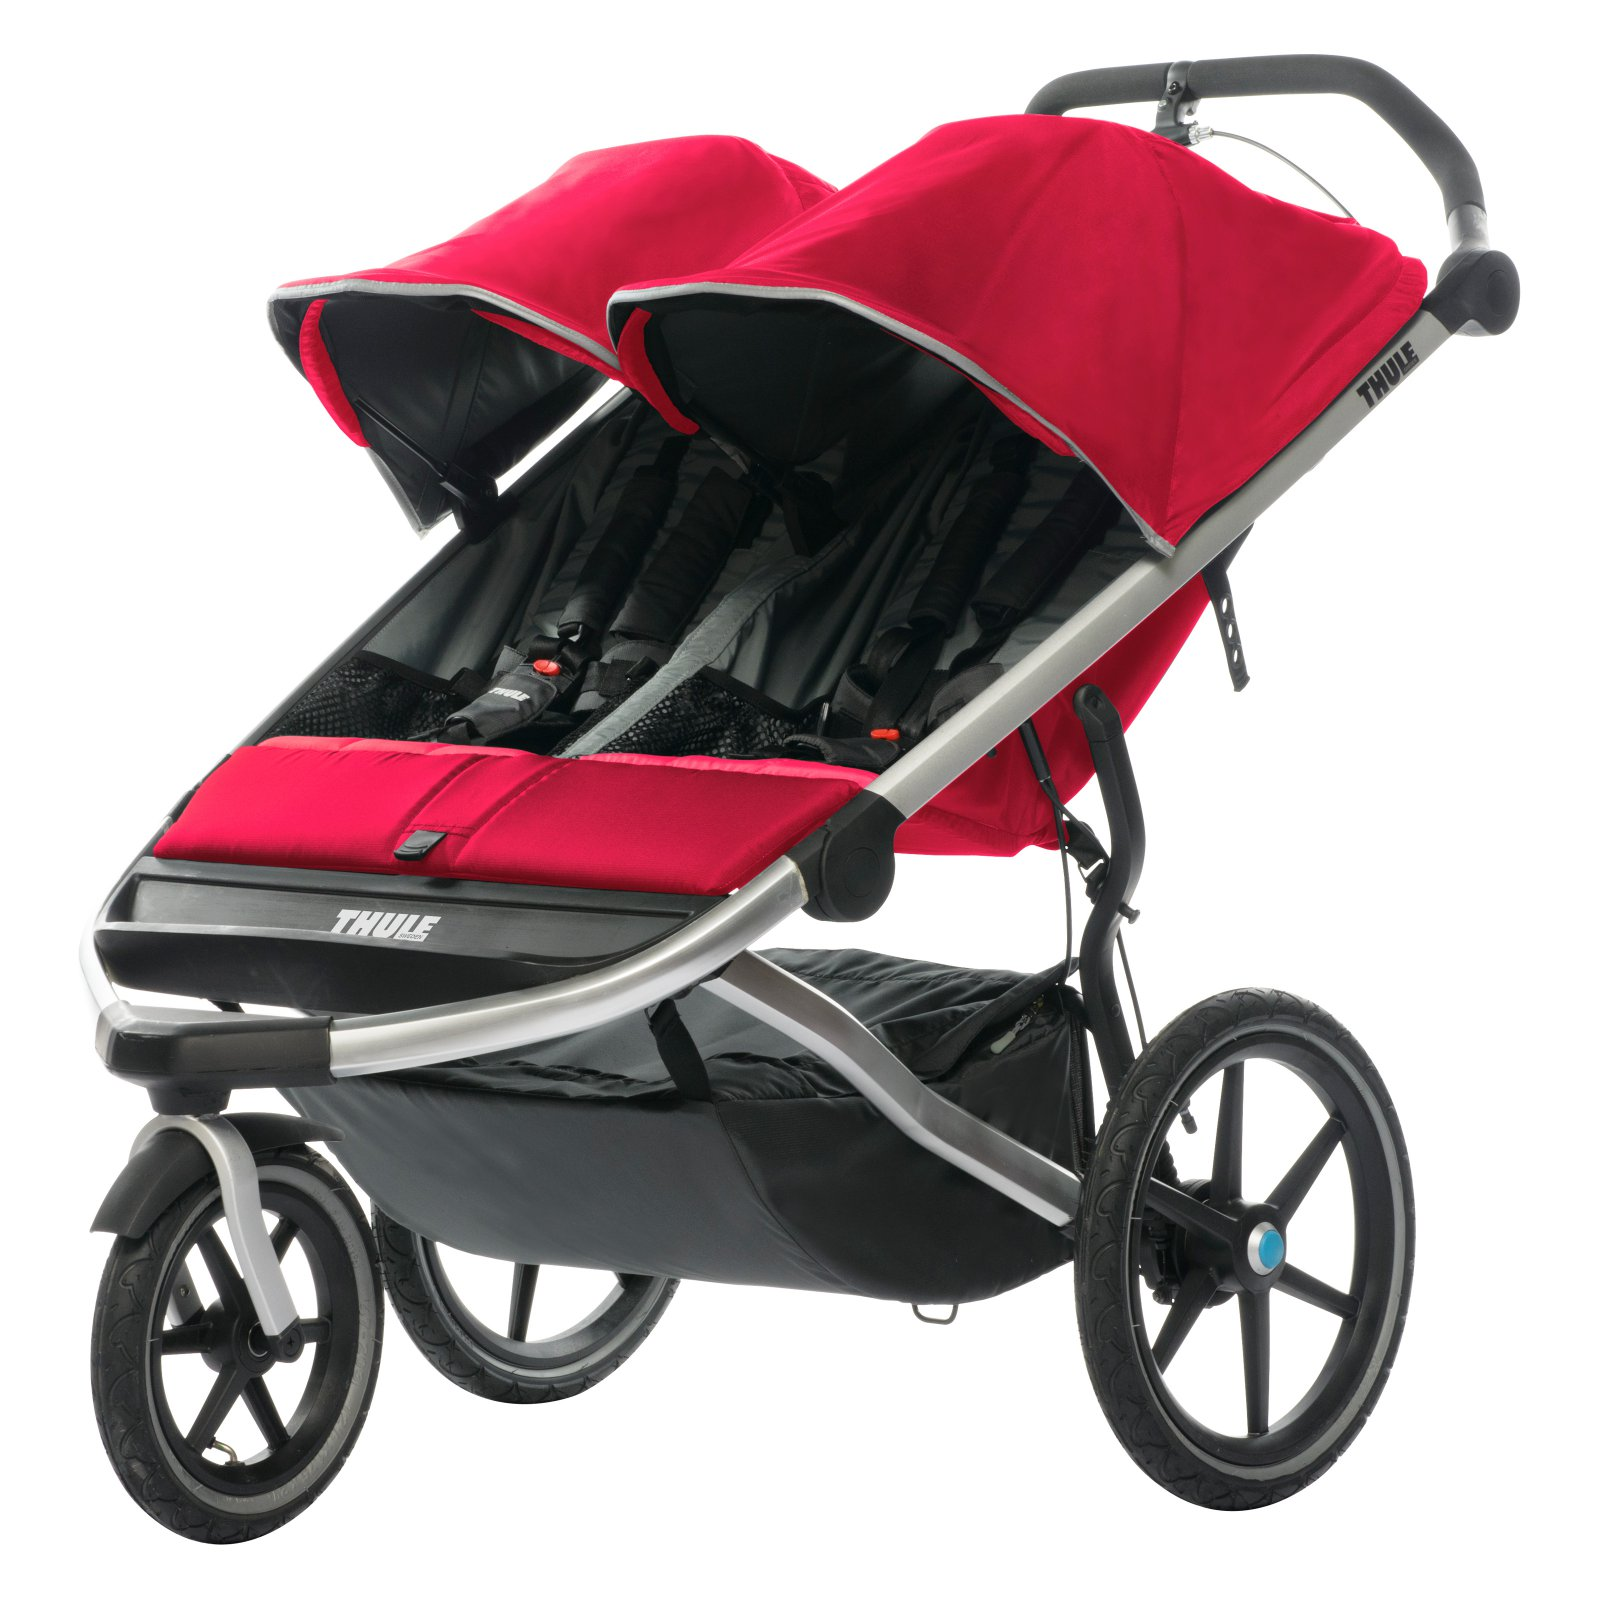 THULE Active with Kids Urban Glide 2 Stroller - Mars